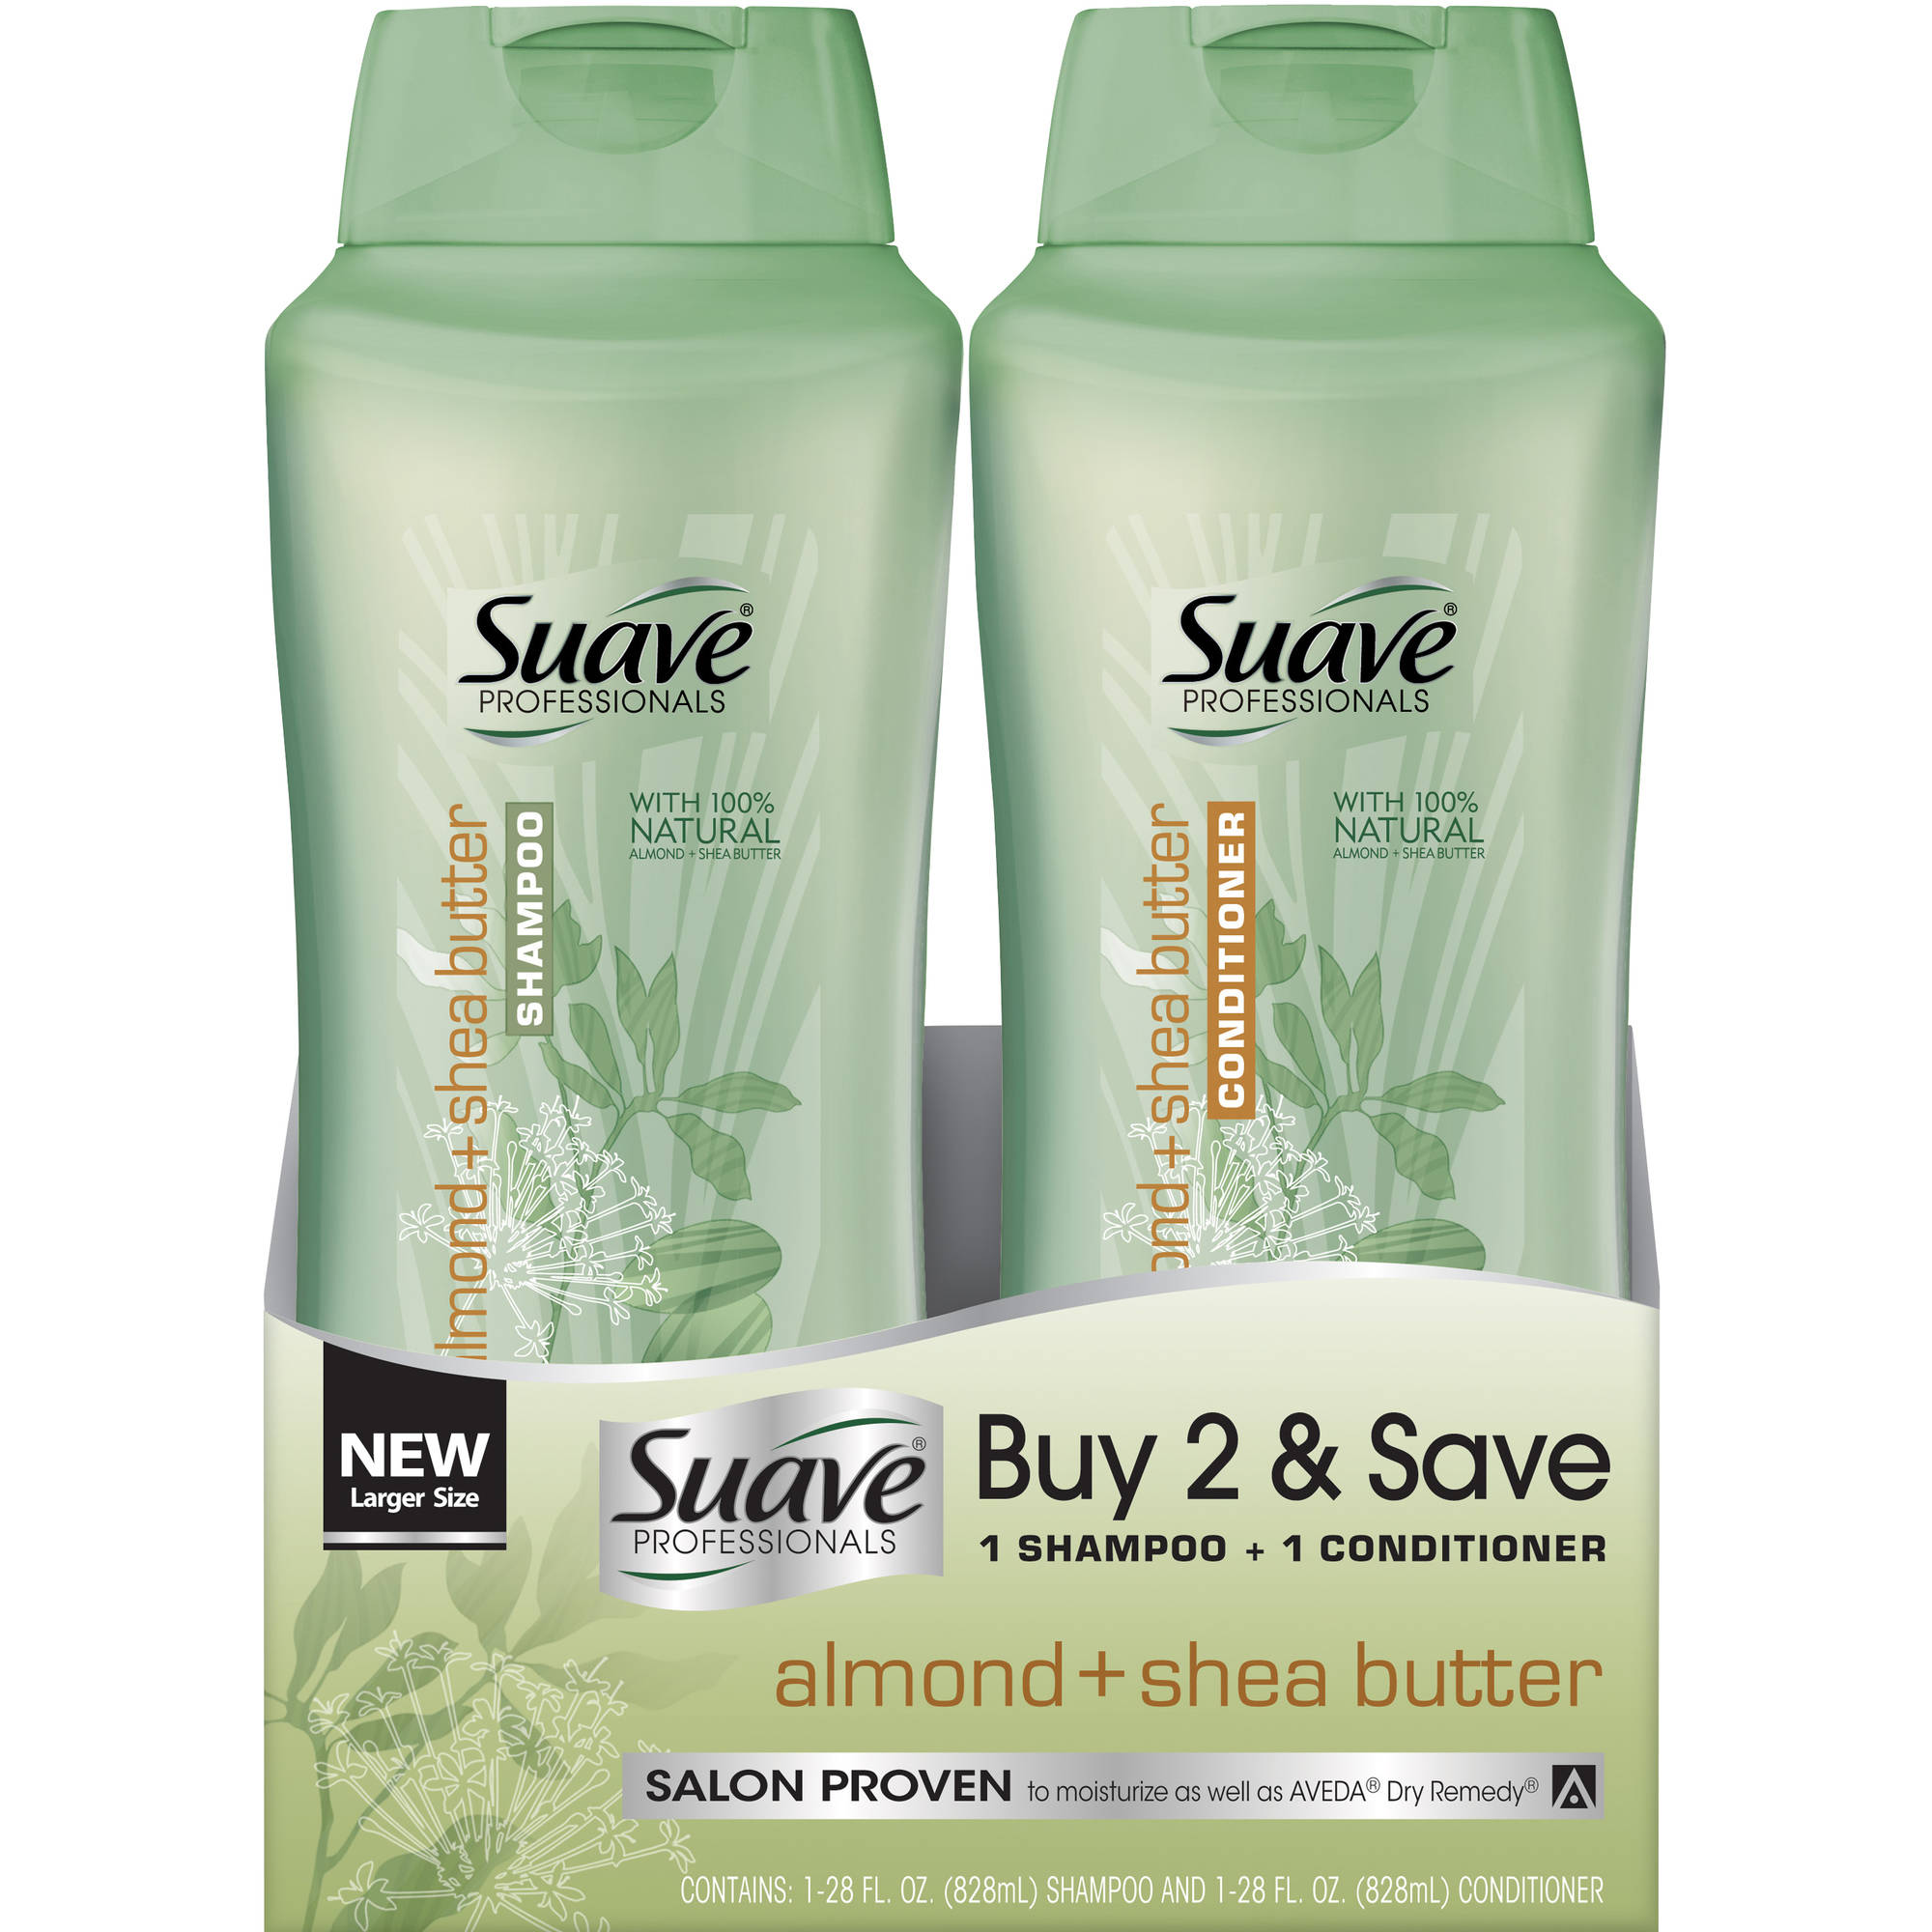 Suave Professionals Almond   Shea Butter Shampoo & Conditioner, 28 fl oz, Pack of 2